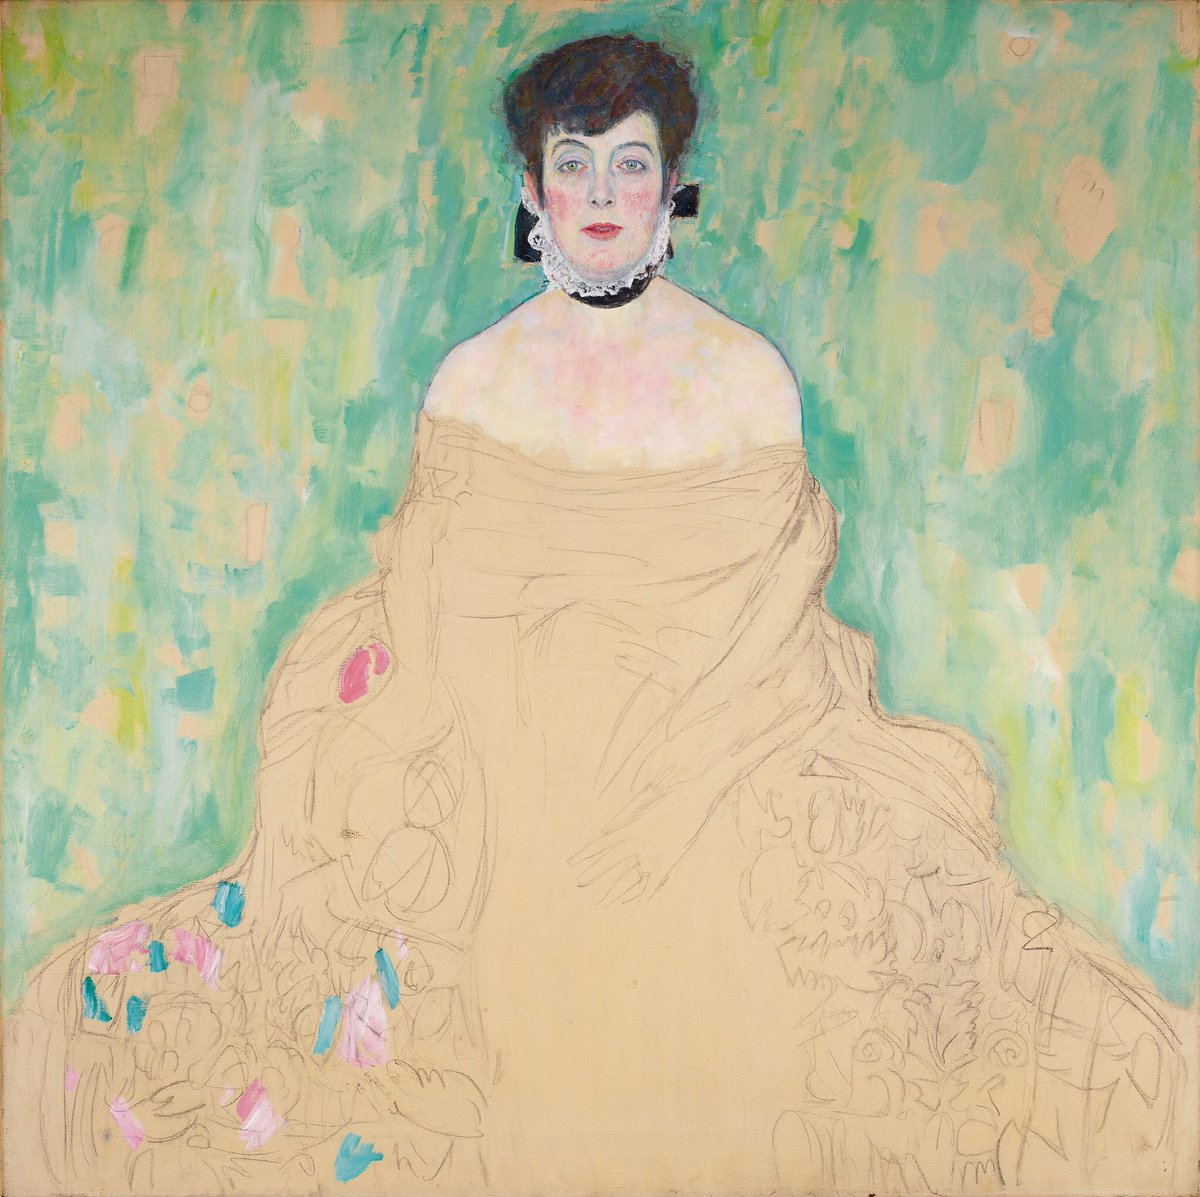 """Some musings on unfinished works and the theme of incompletion, inspired by seeing Klimt's """"Portrait of Amalie Zuckerkandl"""" at the Belvedere in Vienna (Charlie Brooker's """"Bandersnatch"""" also makes an appearance): enfr.blouinartinfo.com/news/story/371… @belvederemuseum @charltonbrooker"""